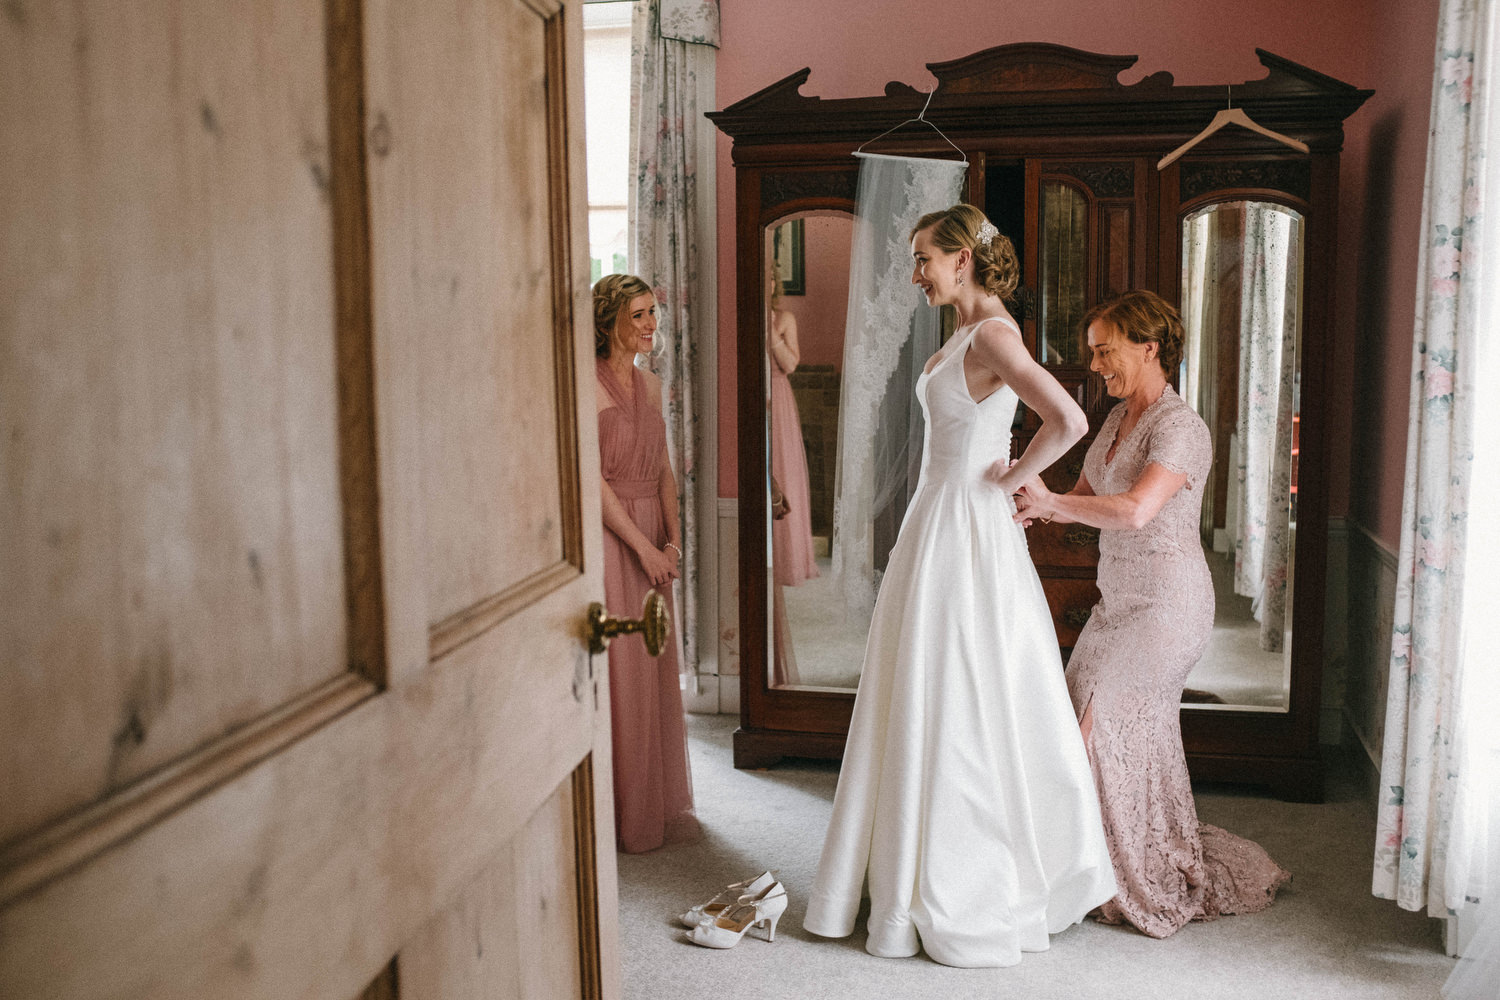 000000000000000000000073_bride_style_preparation_vintage_Hair_dress_photography_david_mcclelland_ireland_makeup_castle_hollywood_kinnity_wedding_photographer_fujifilm